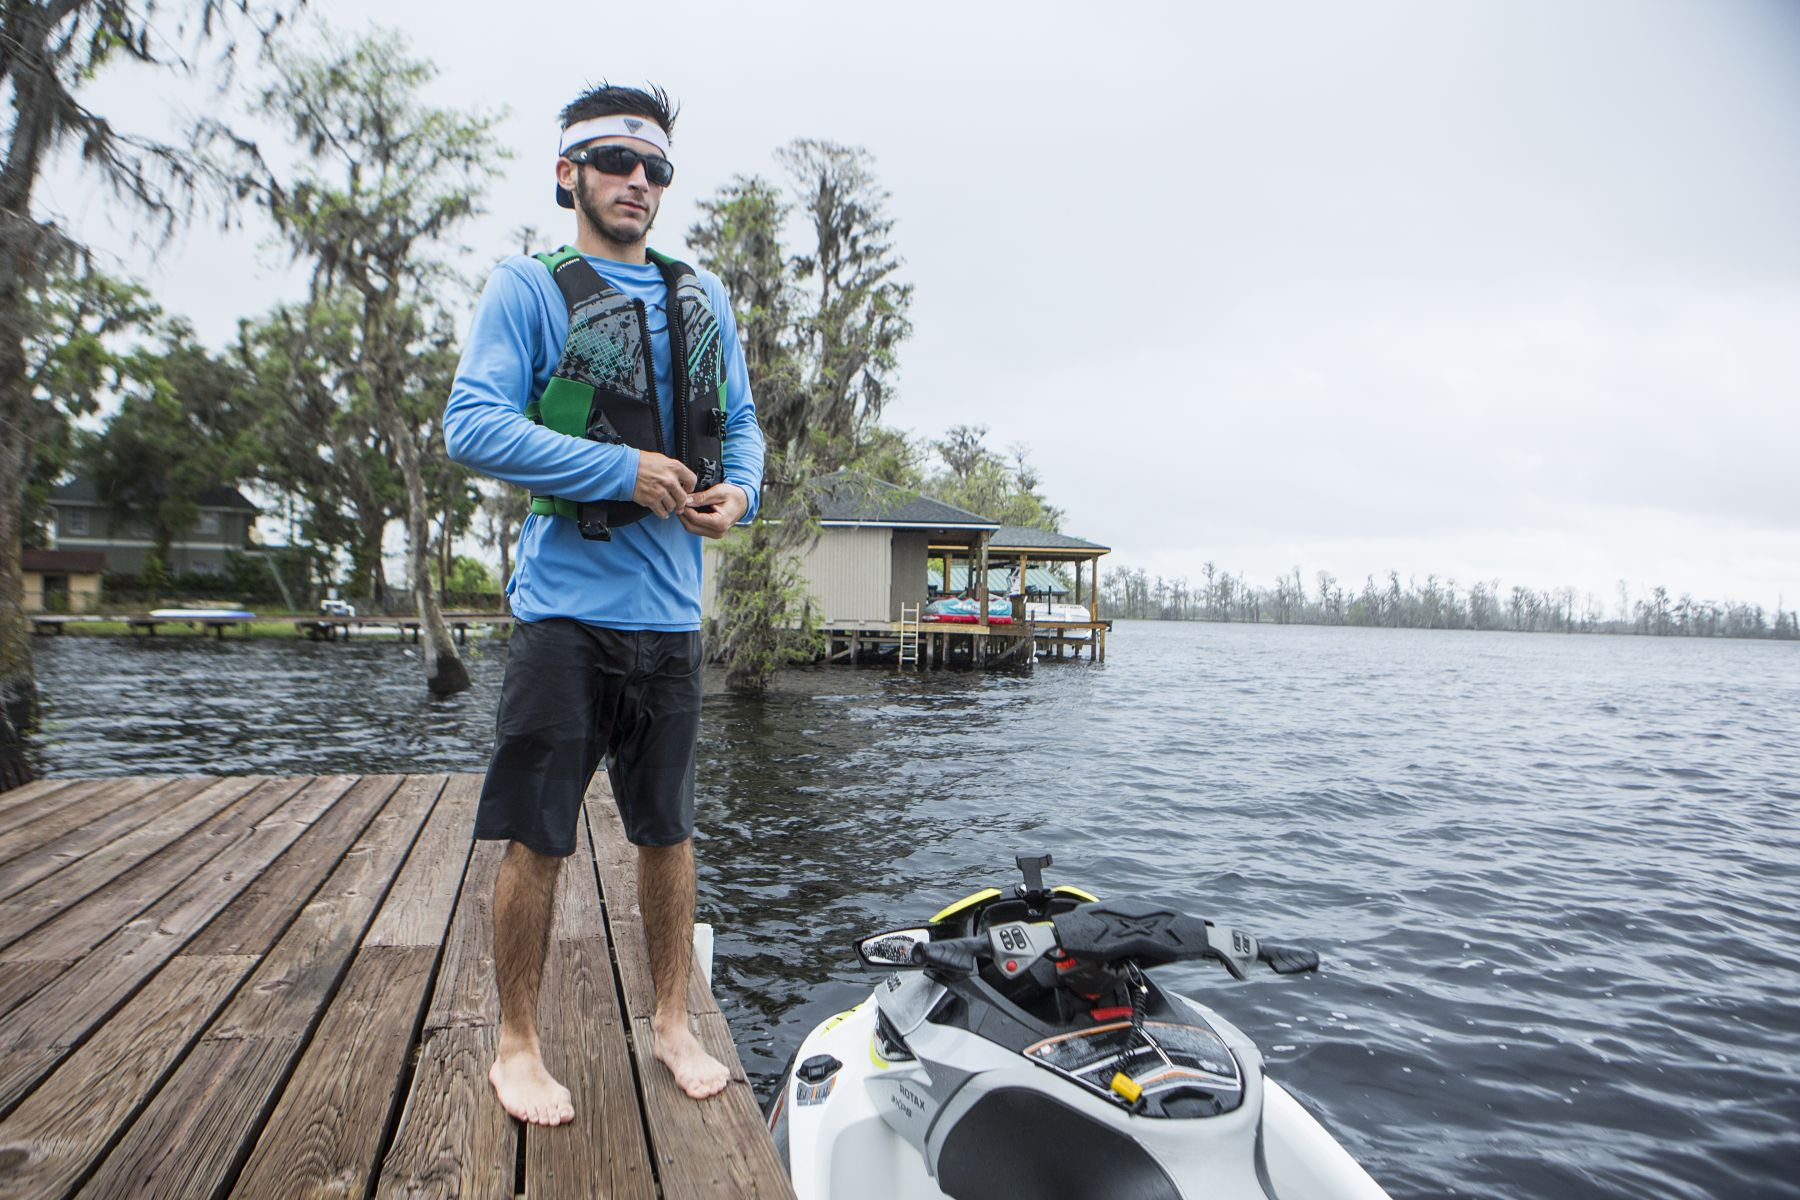 Putting a life jacket on before operating a personal watercraft.